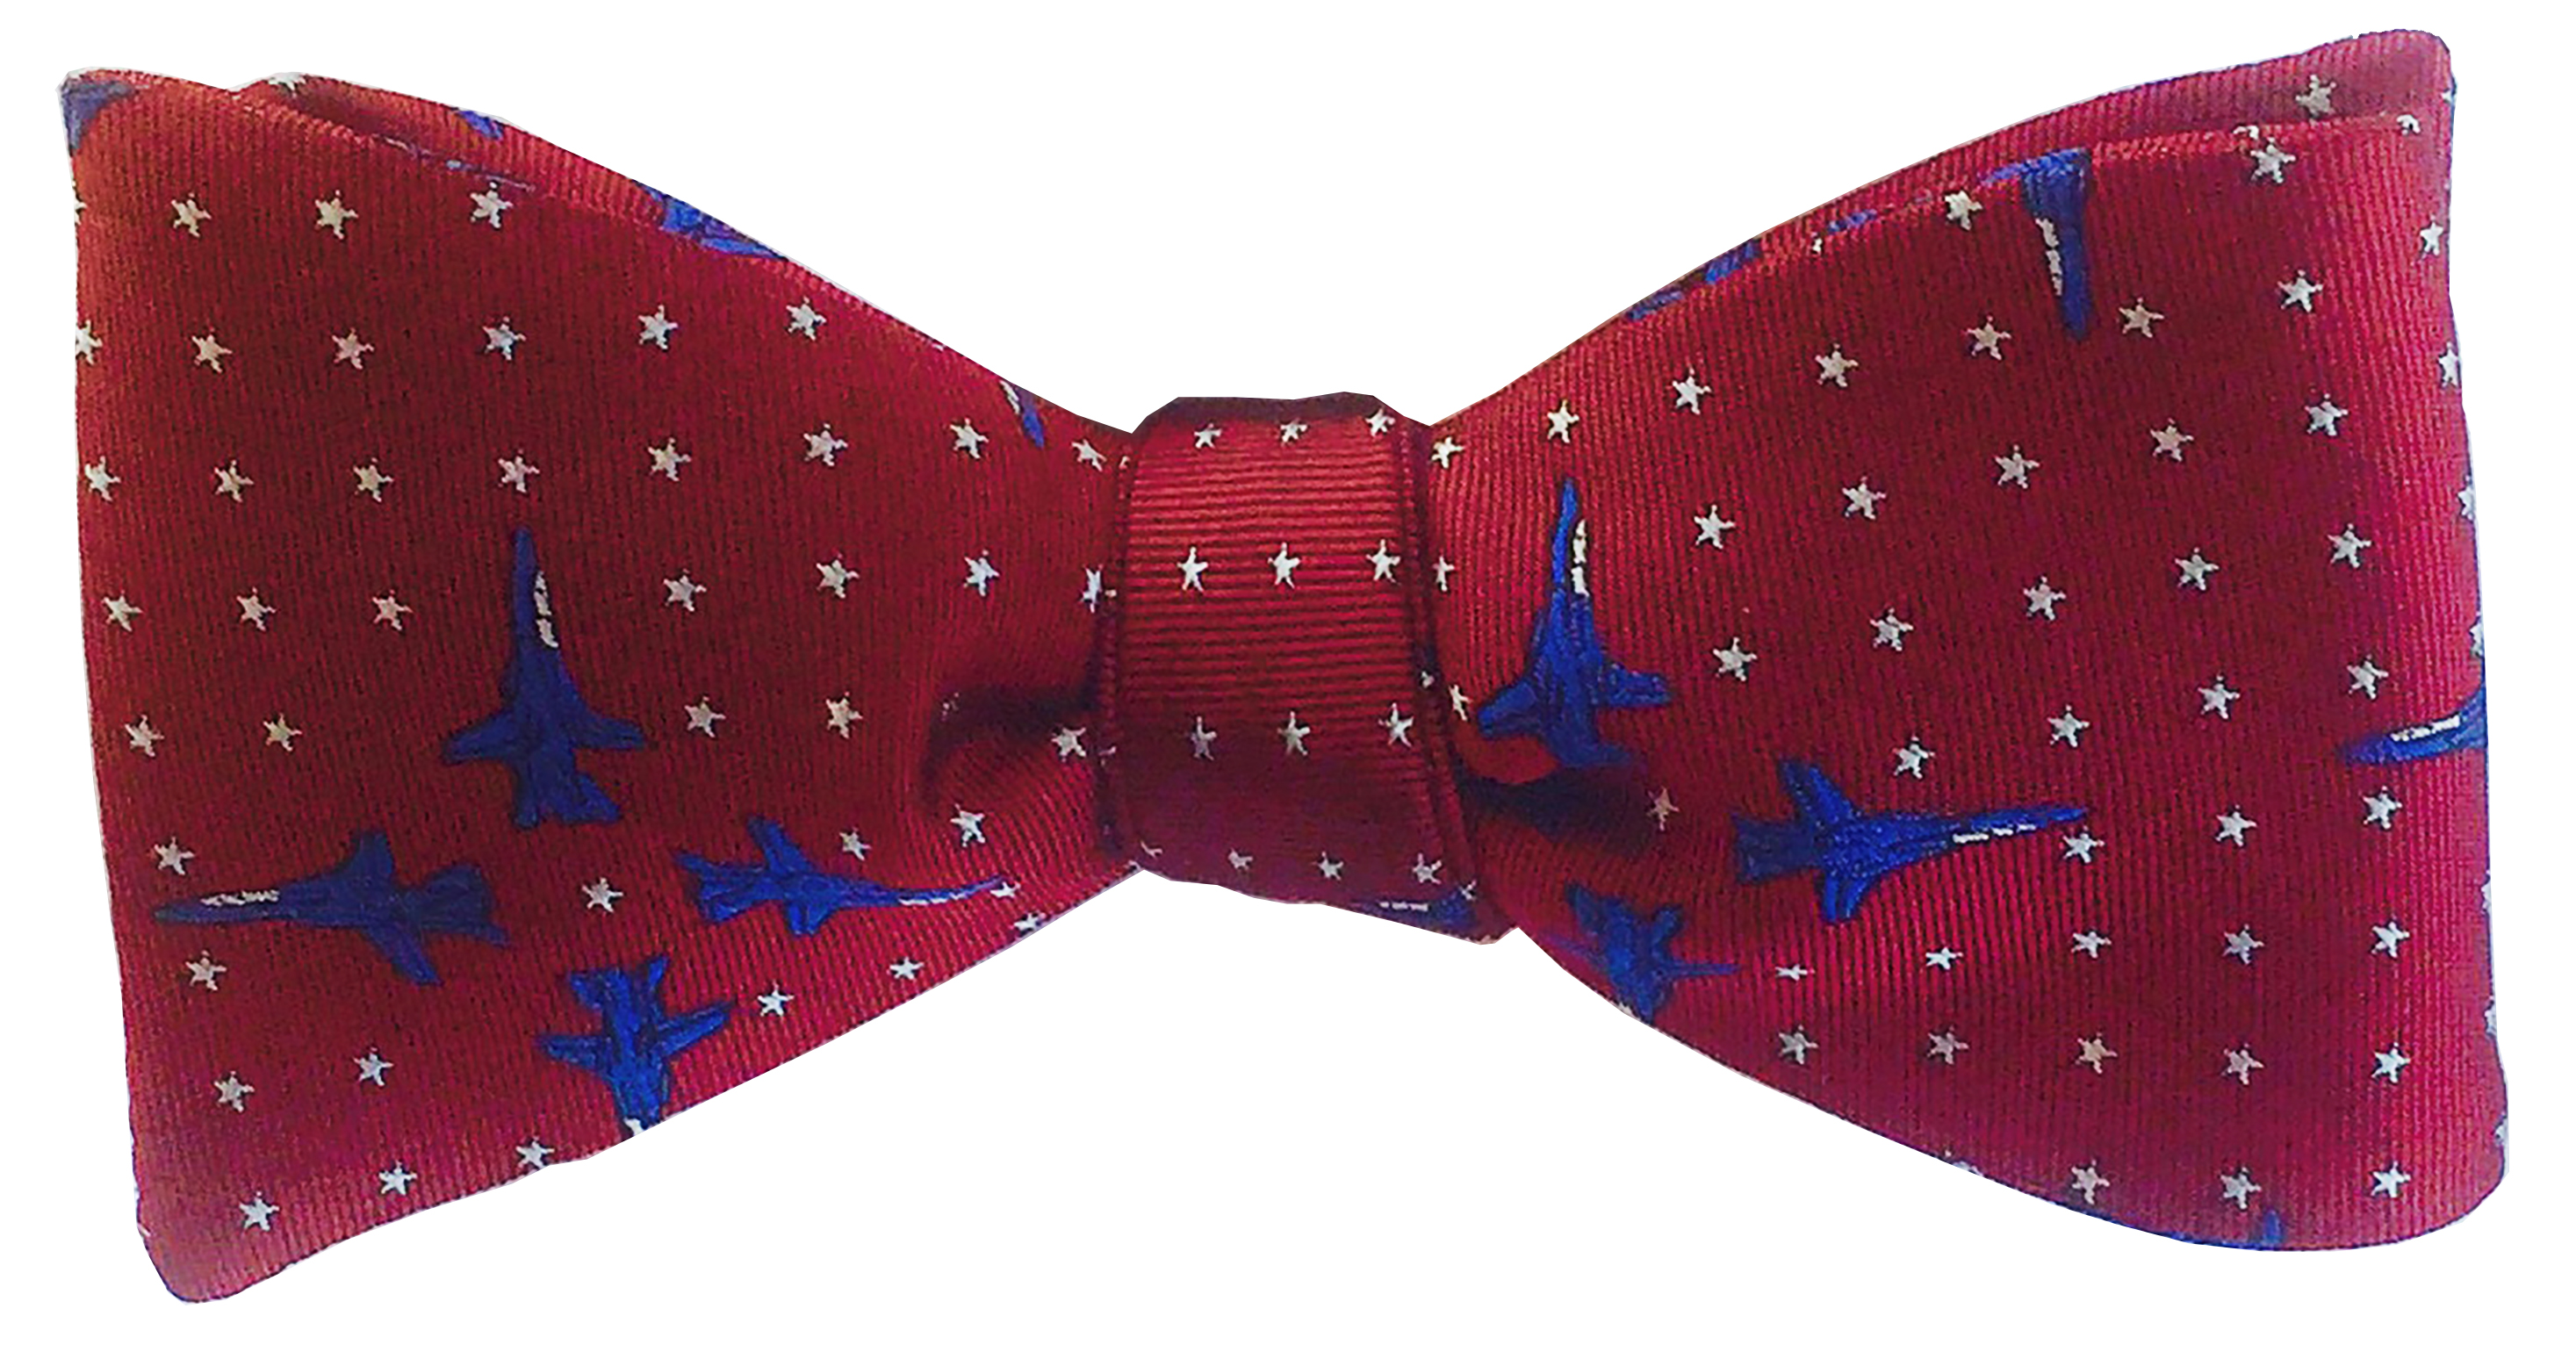 F-14 bow tie in deep red